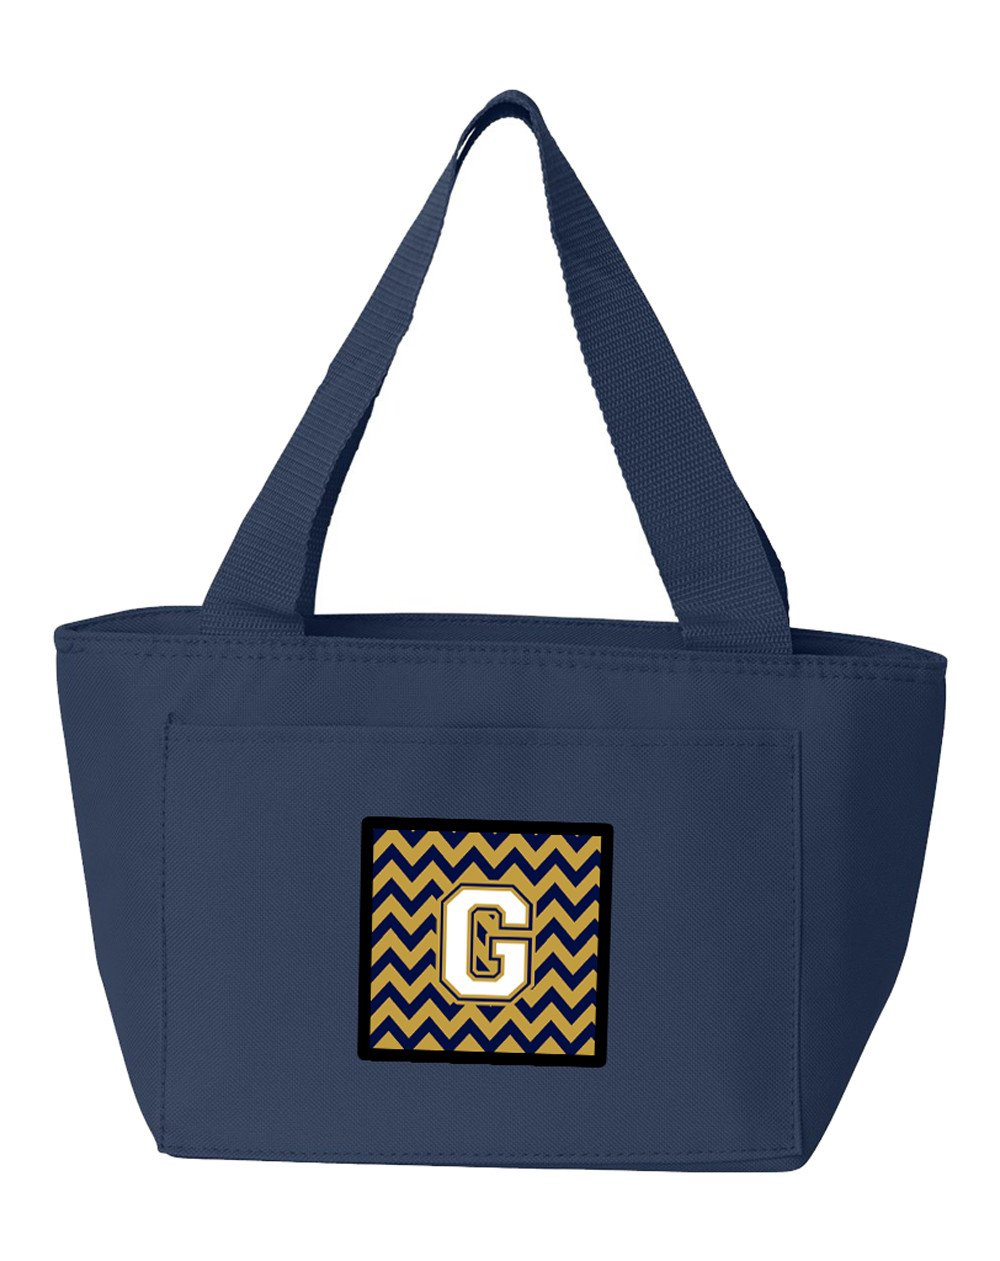 Letter G Chevron Navy Blue and Gold Lunch Bag CJ1057-GNA-8808 by Caroline's Treasures